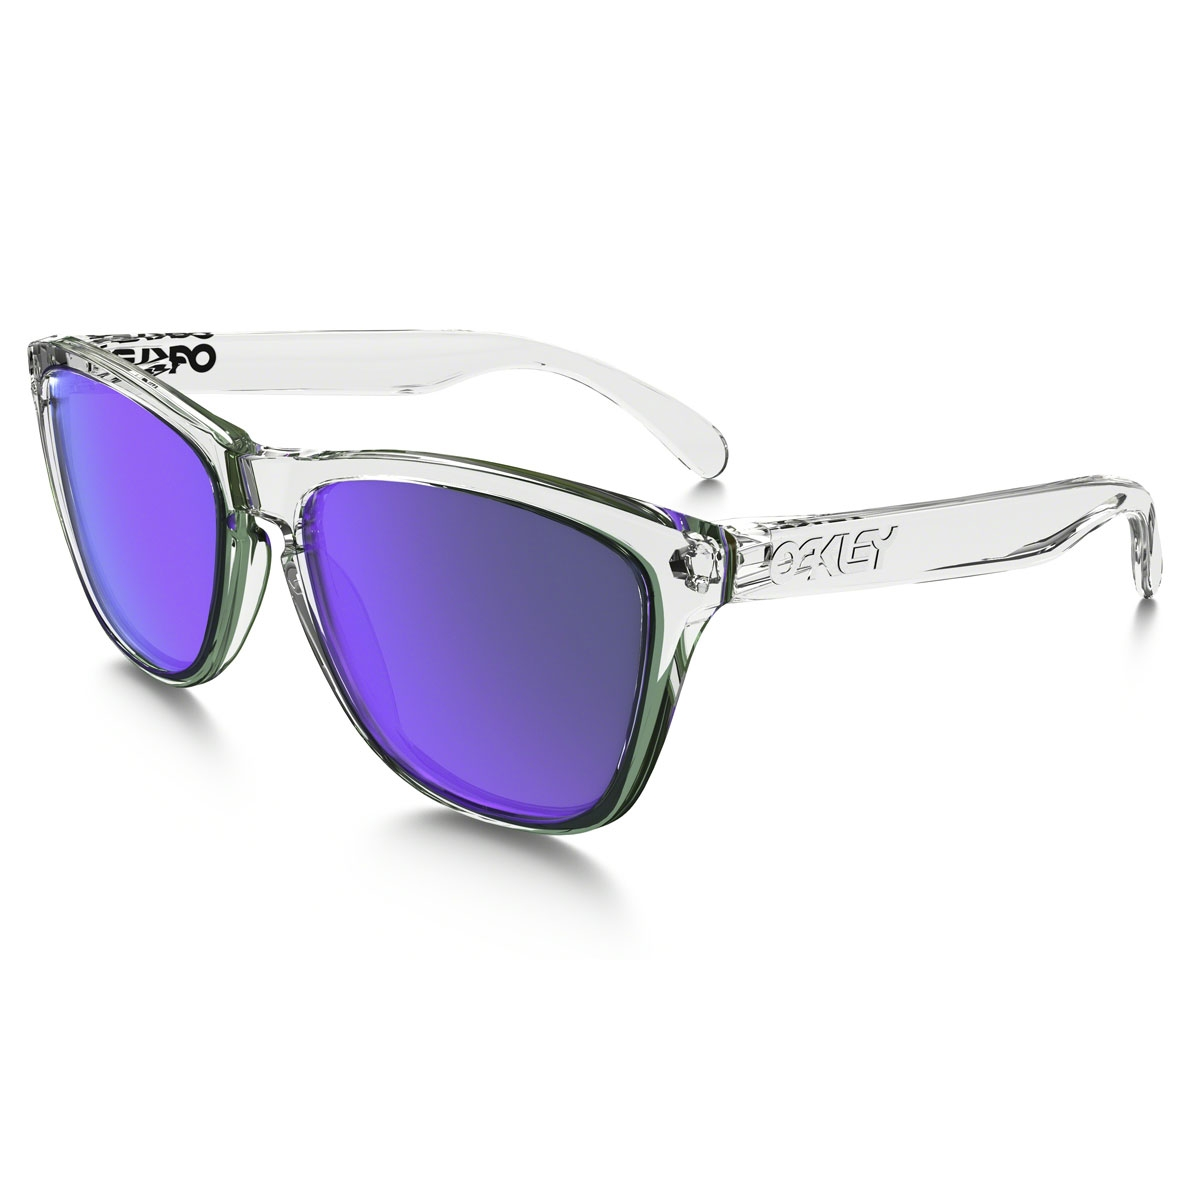 Oakley Frogskins Men\'s Sunglasses - Polished Clear Frame/Violet ...